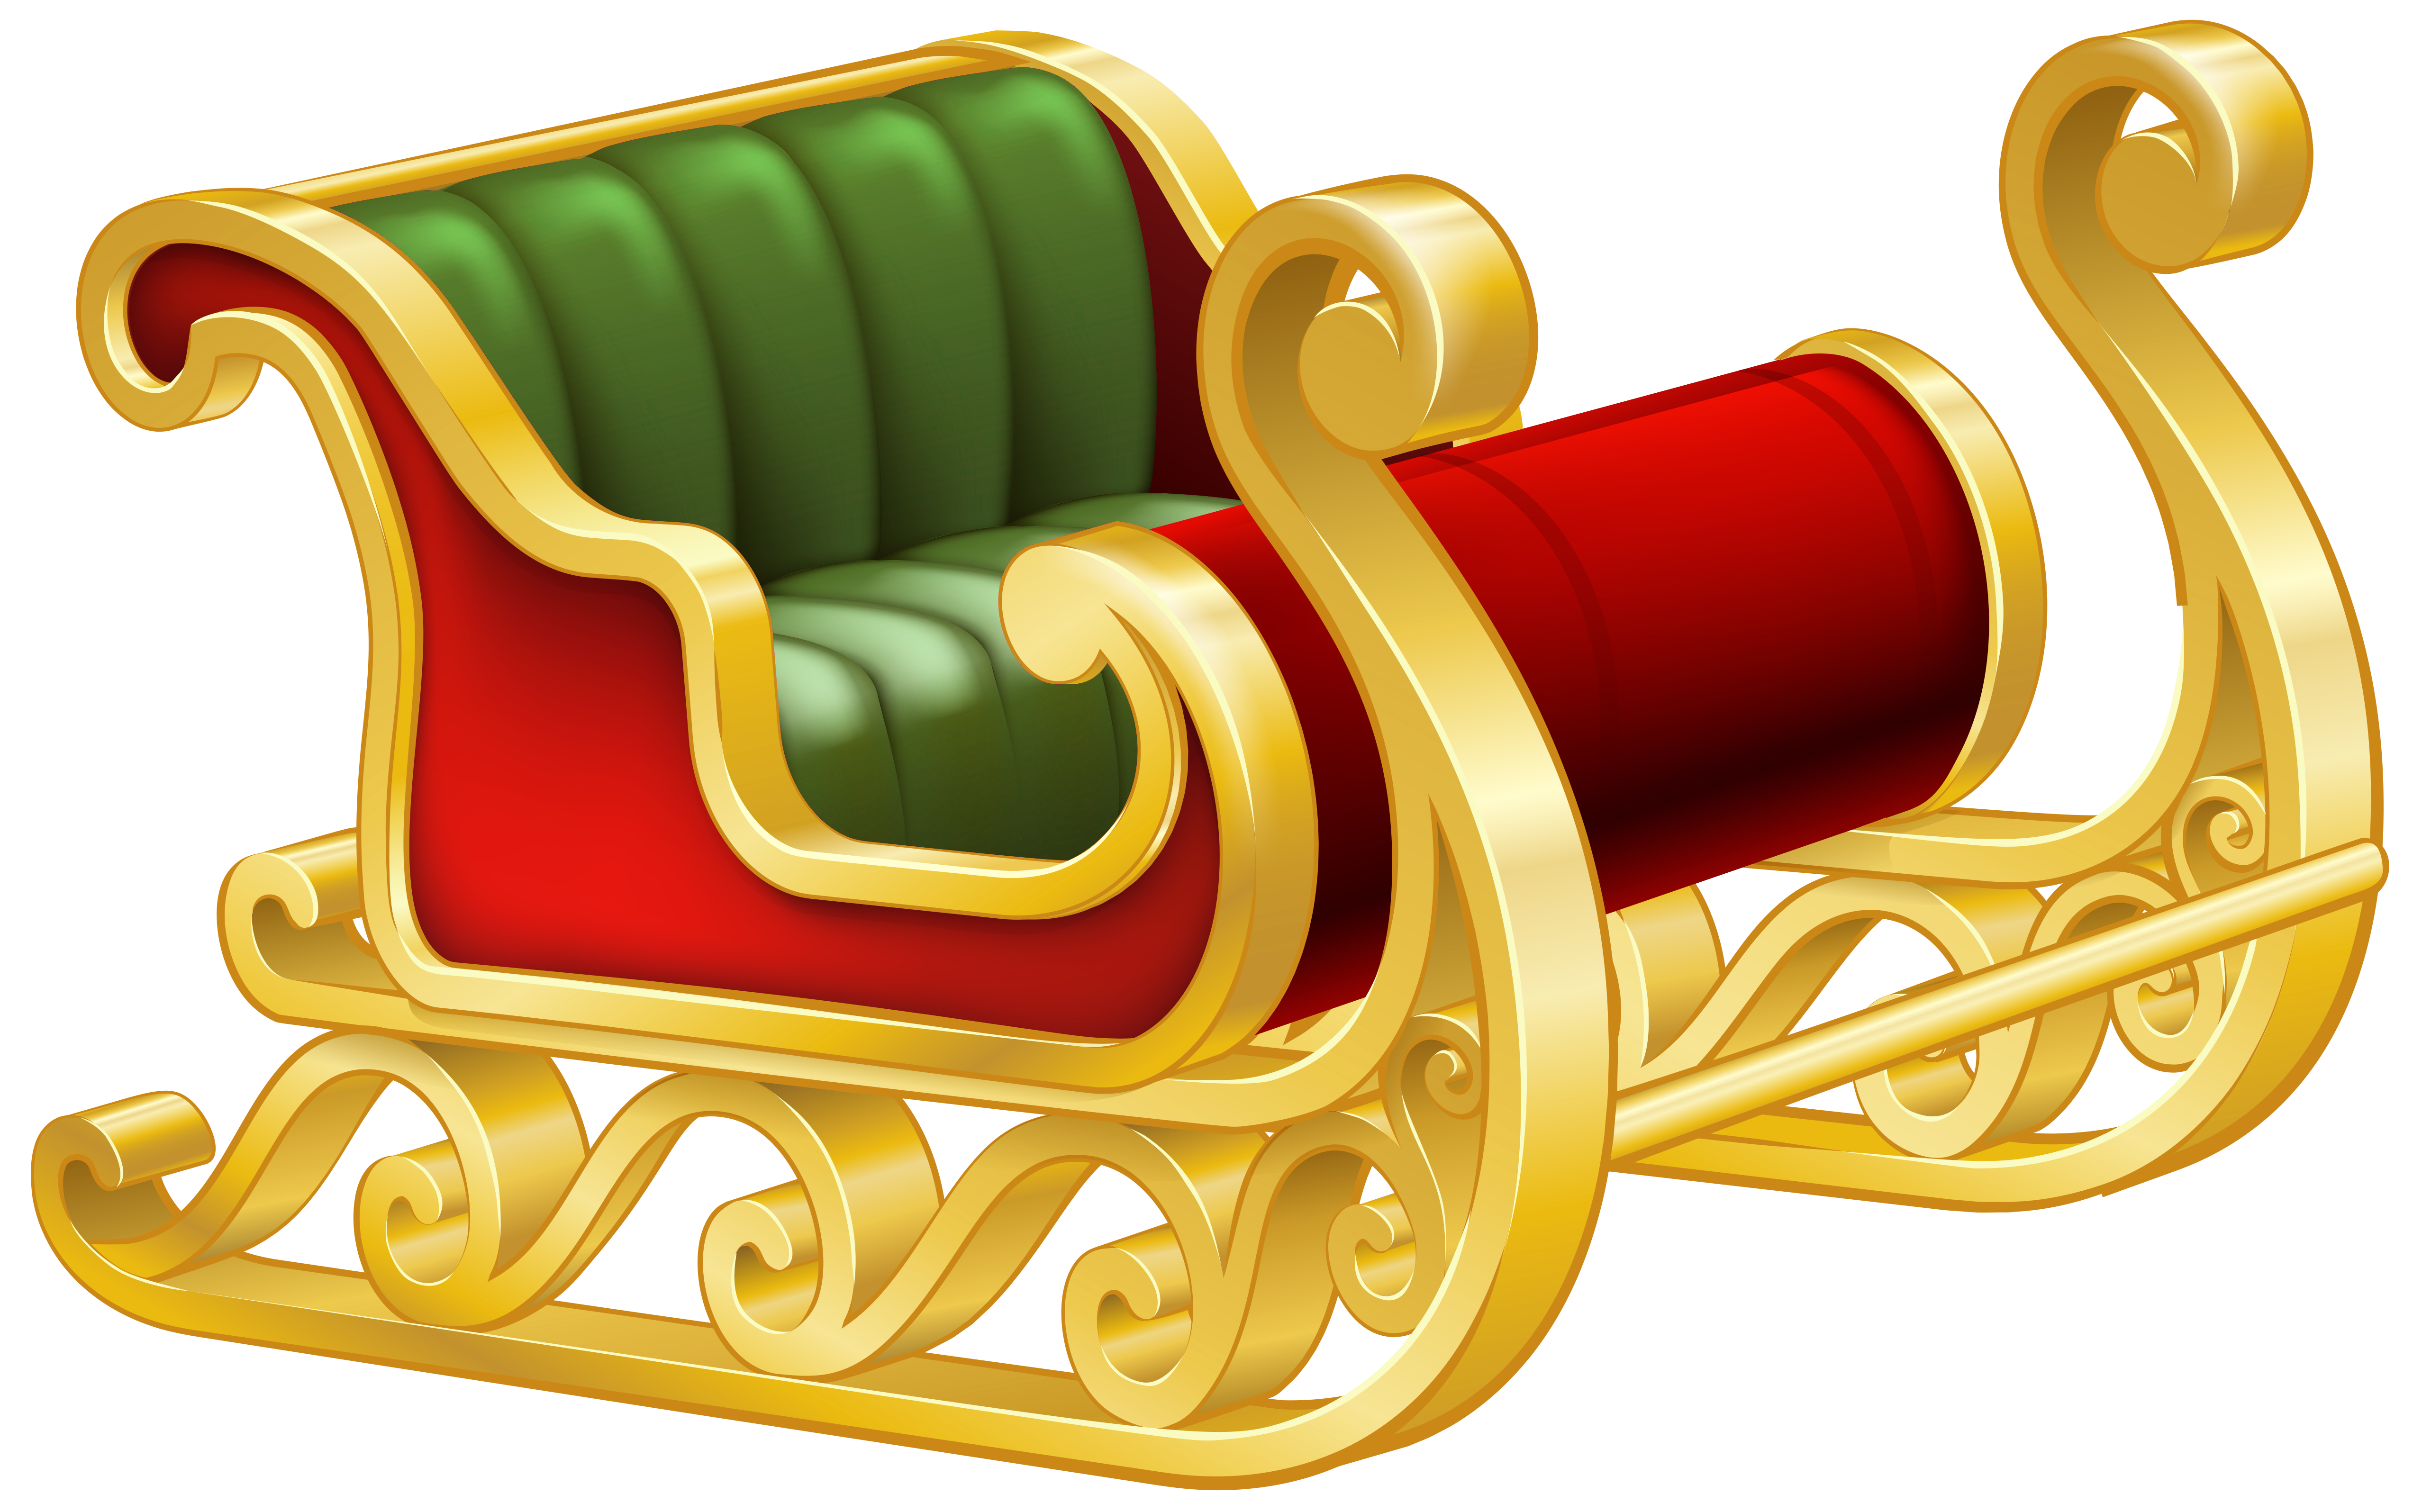 Christmas sleigh clipart picture picture freeuse Pin by Jane Perry on Png | Santa sleigh, Christmas sled, Clip art picture freeuse